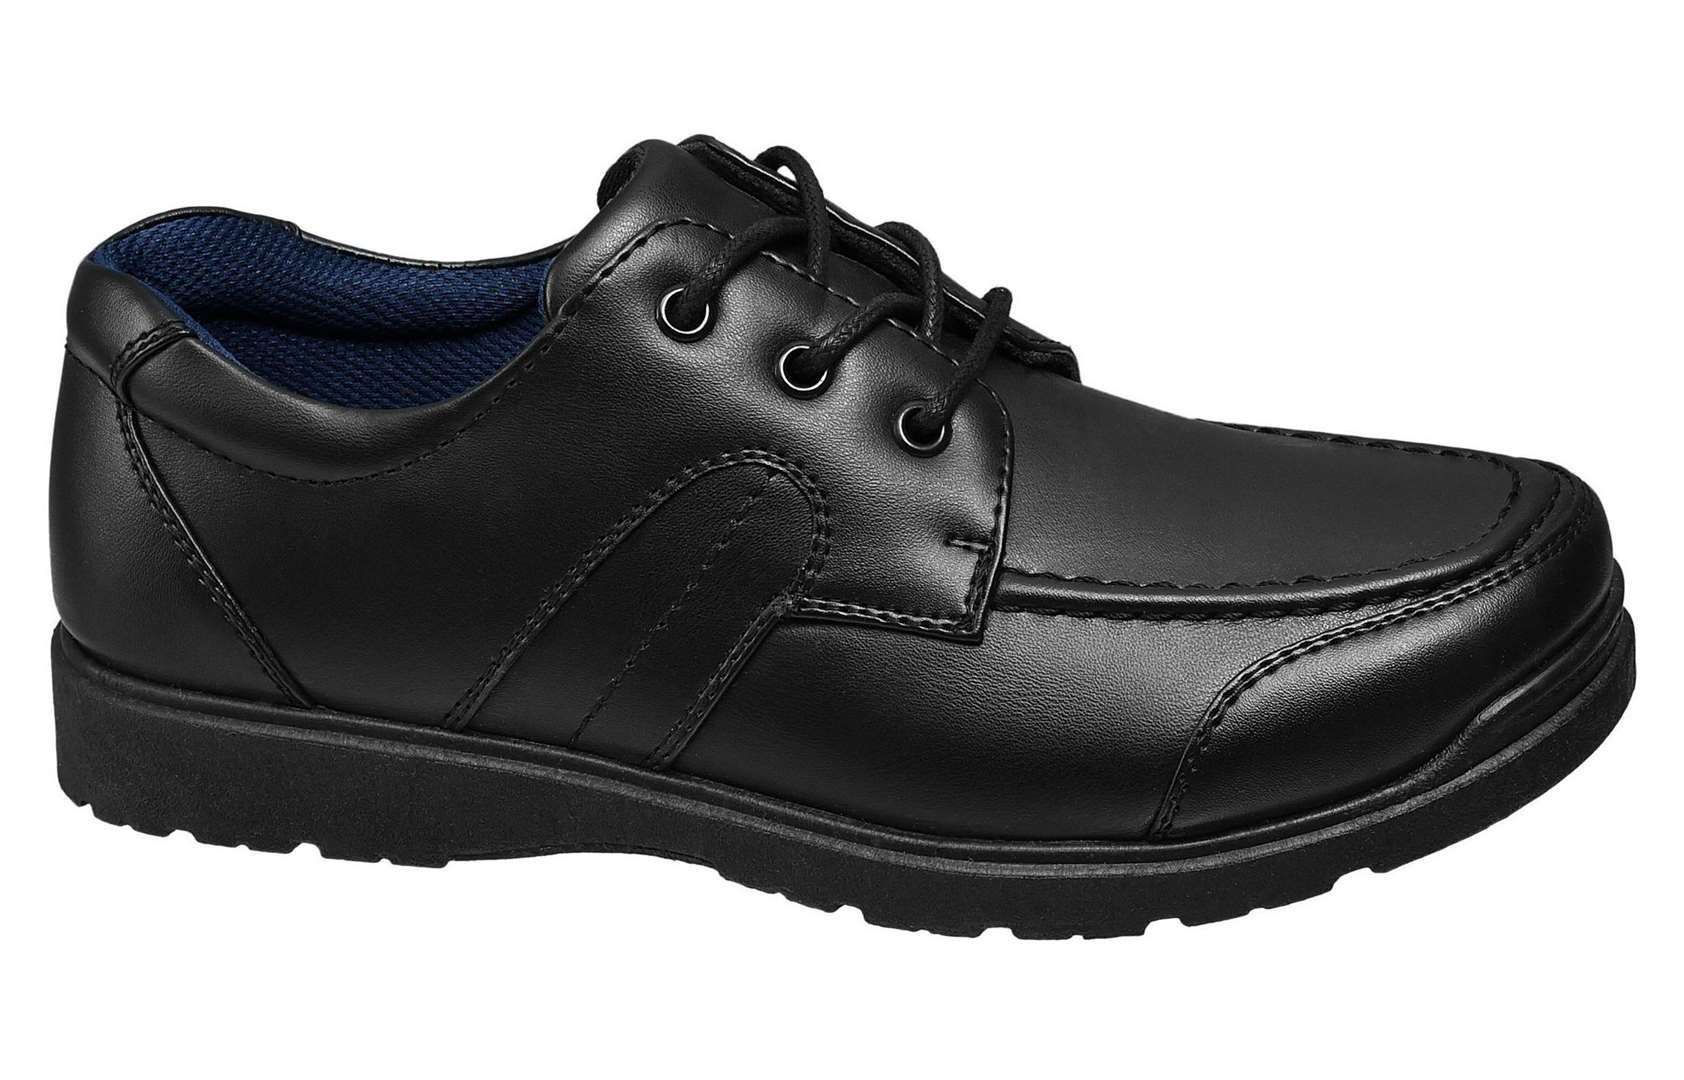 8e3f1d3c96 Memphis One Teen Boy Lace Up School Shoes, £17.99 - buy one get one